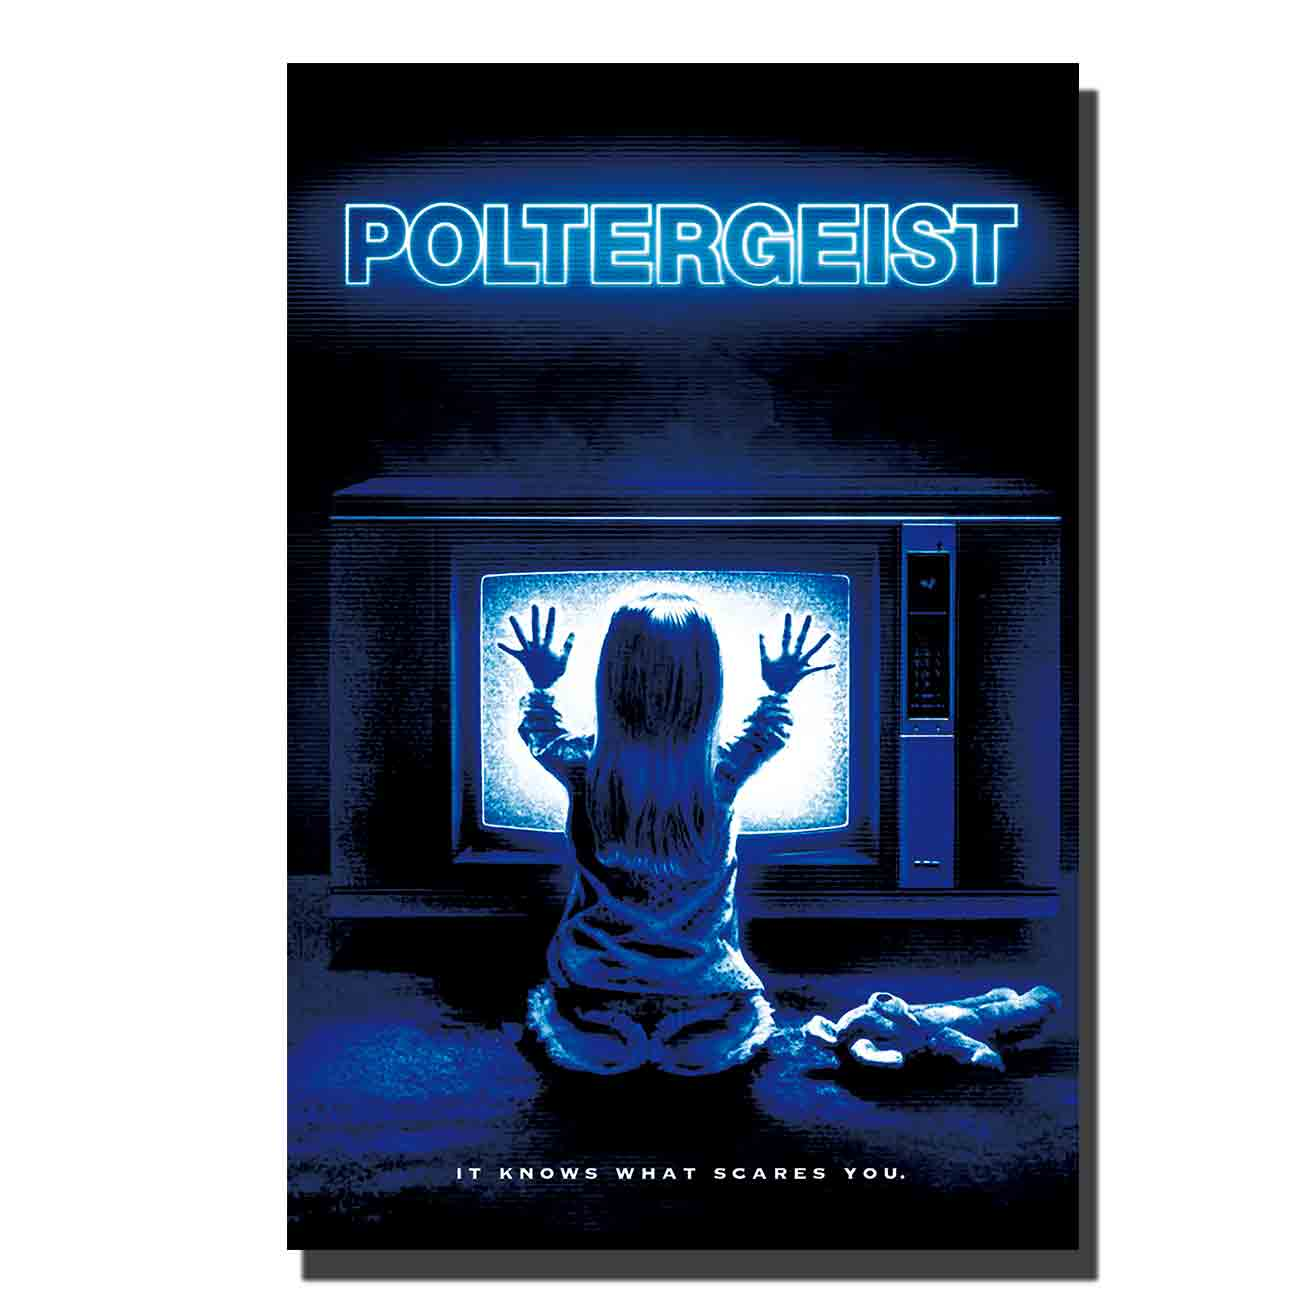 POLTERGEIST Movie Horror Paranormal Activity Speilberg Hooper Ghosts Art Poster custom Home 12x18 24x36canvas image